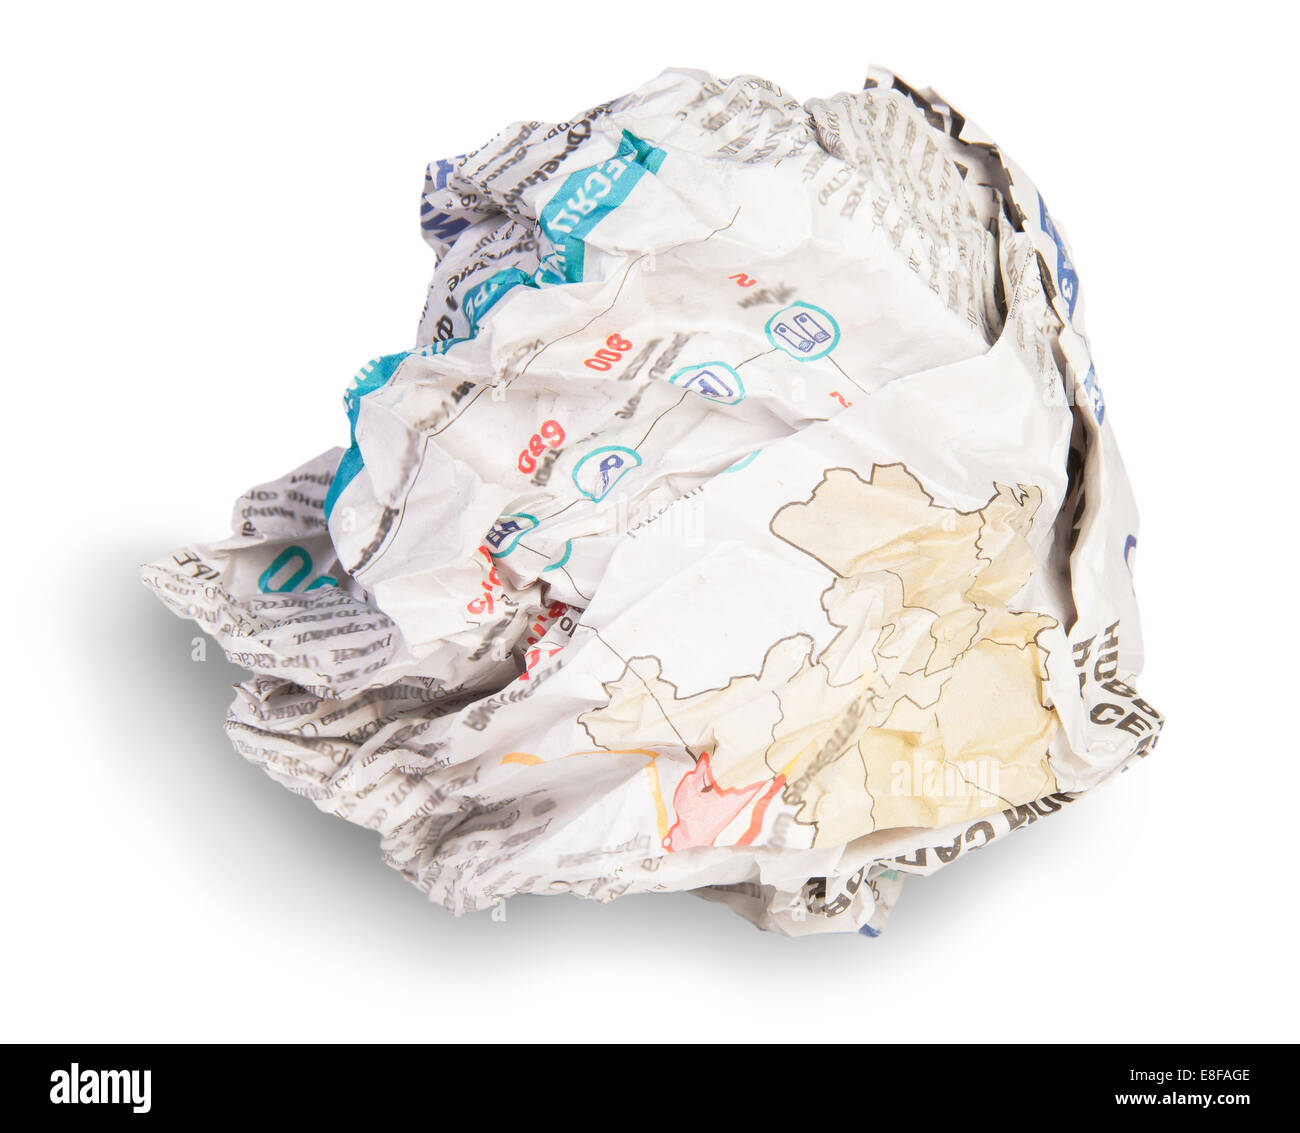 Crumpled Sheet Of Newspaper Isolated On White Background - Stock Image